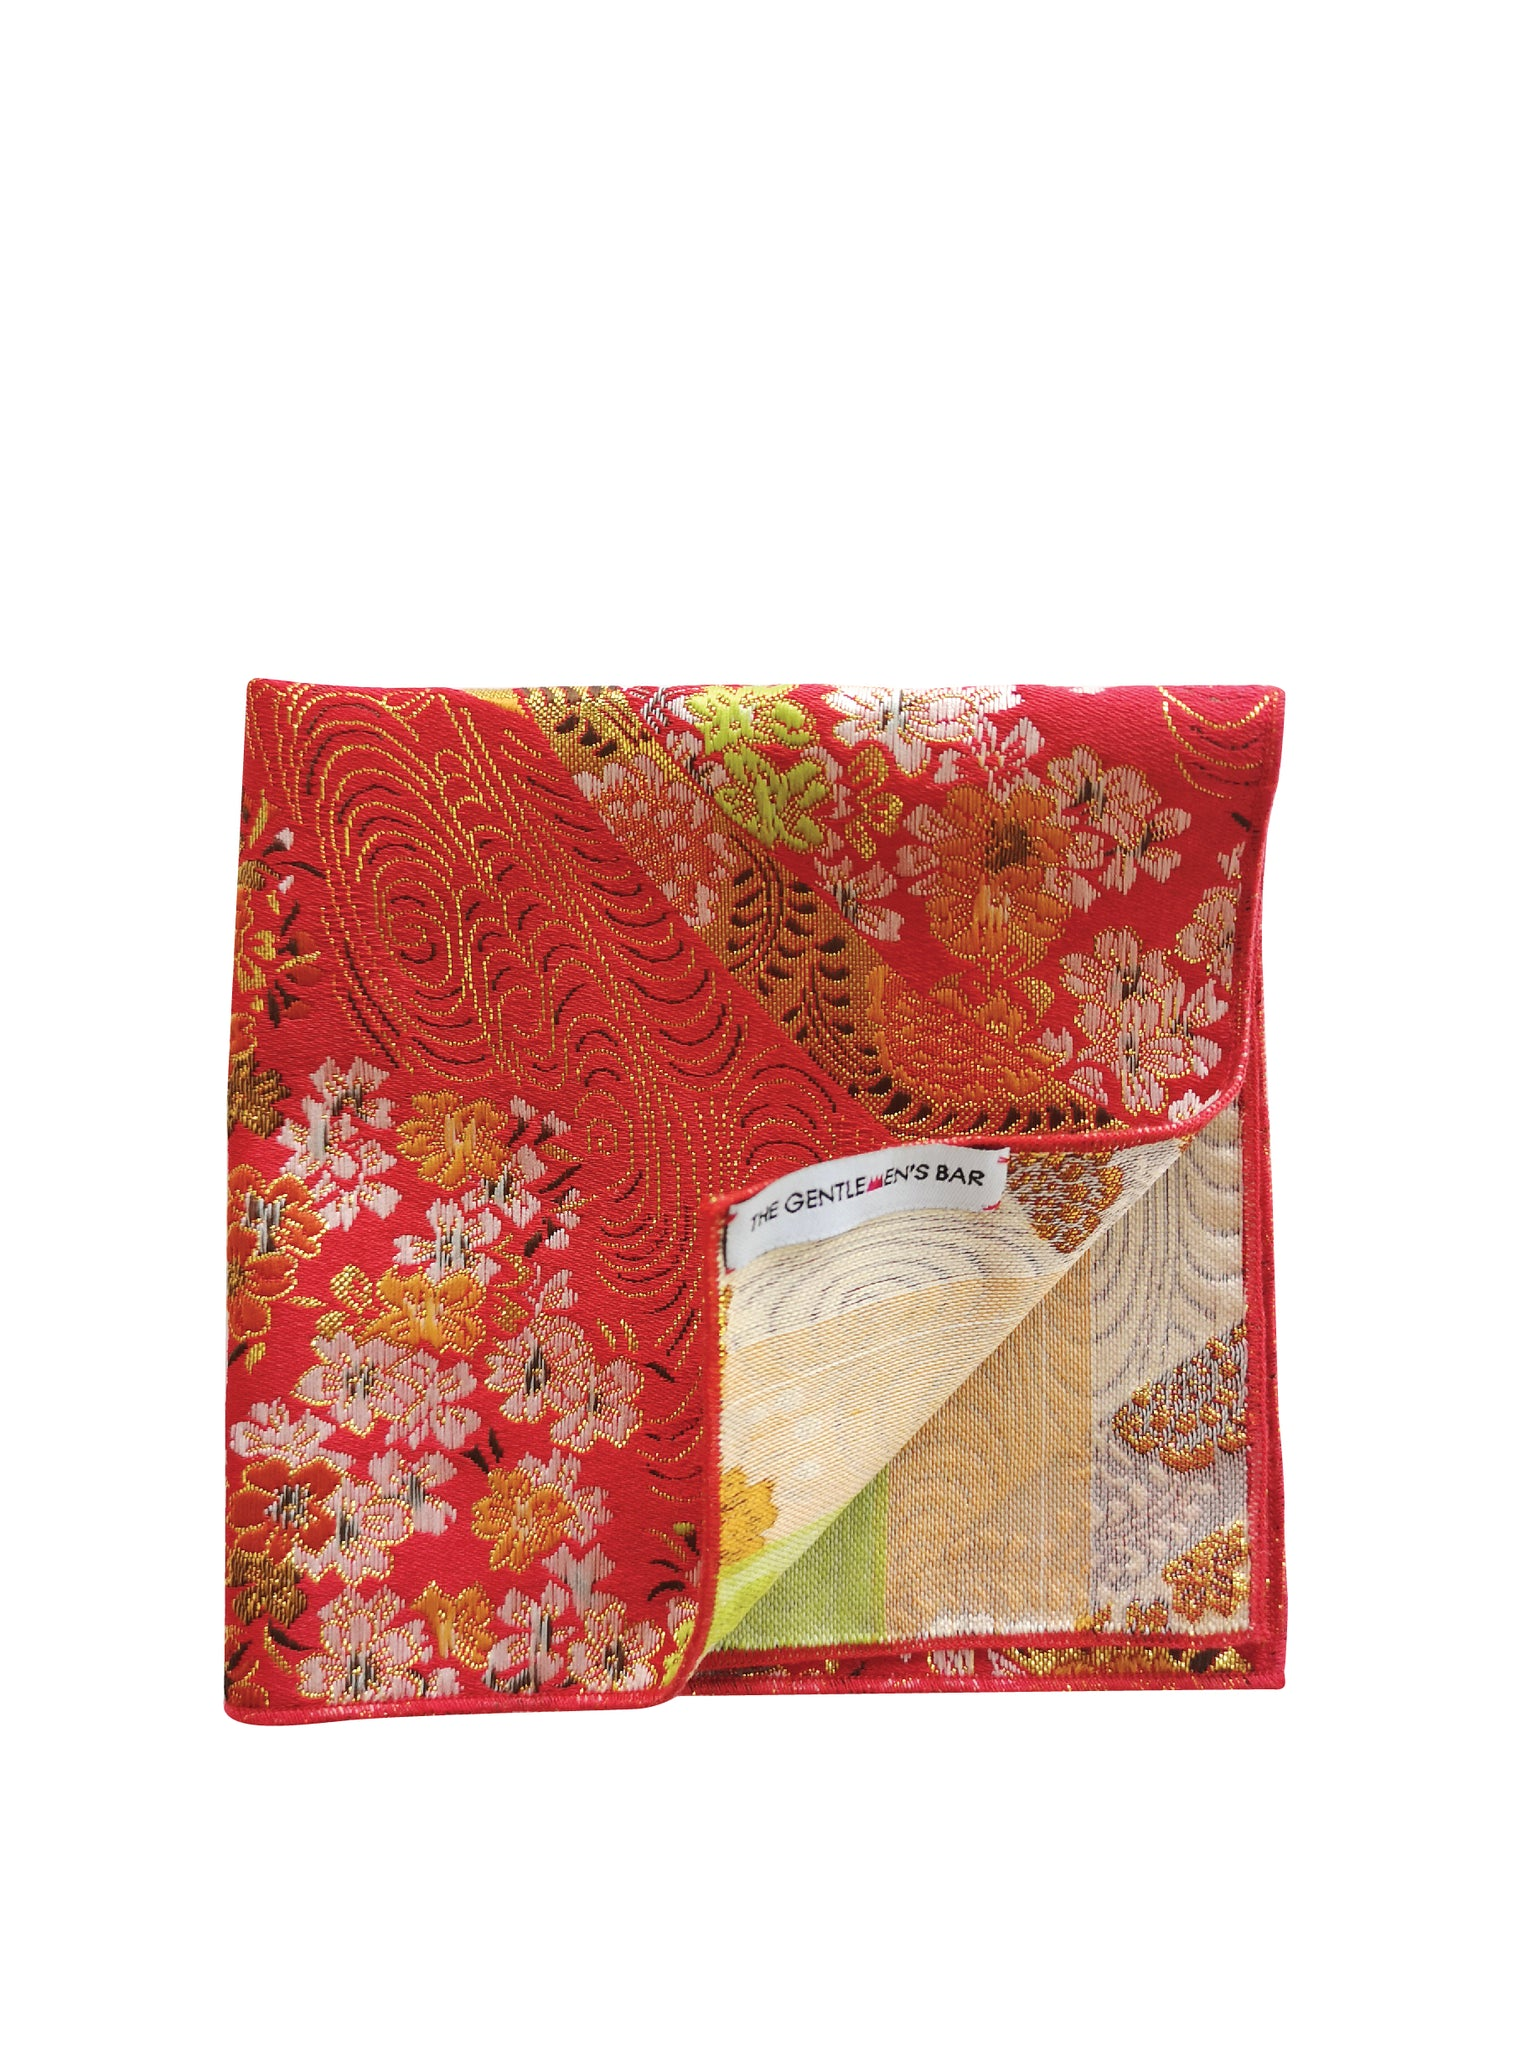 THE SANYU R POCKET SQUARE